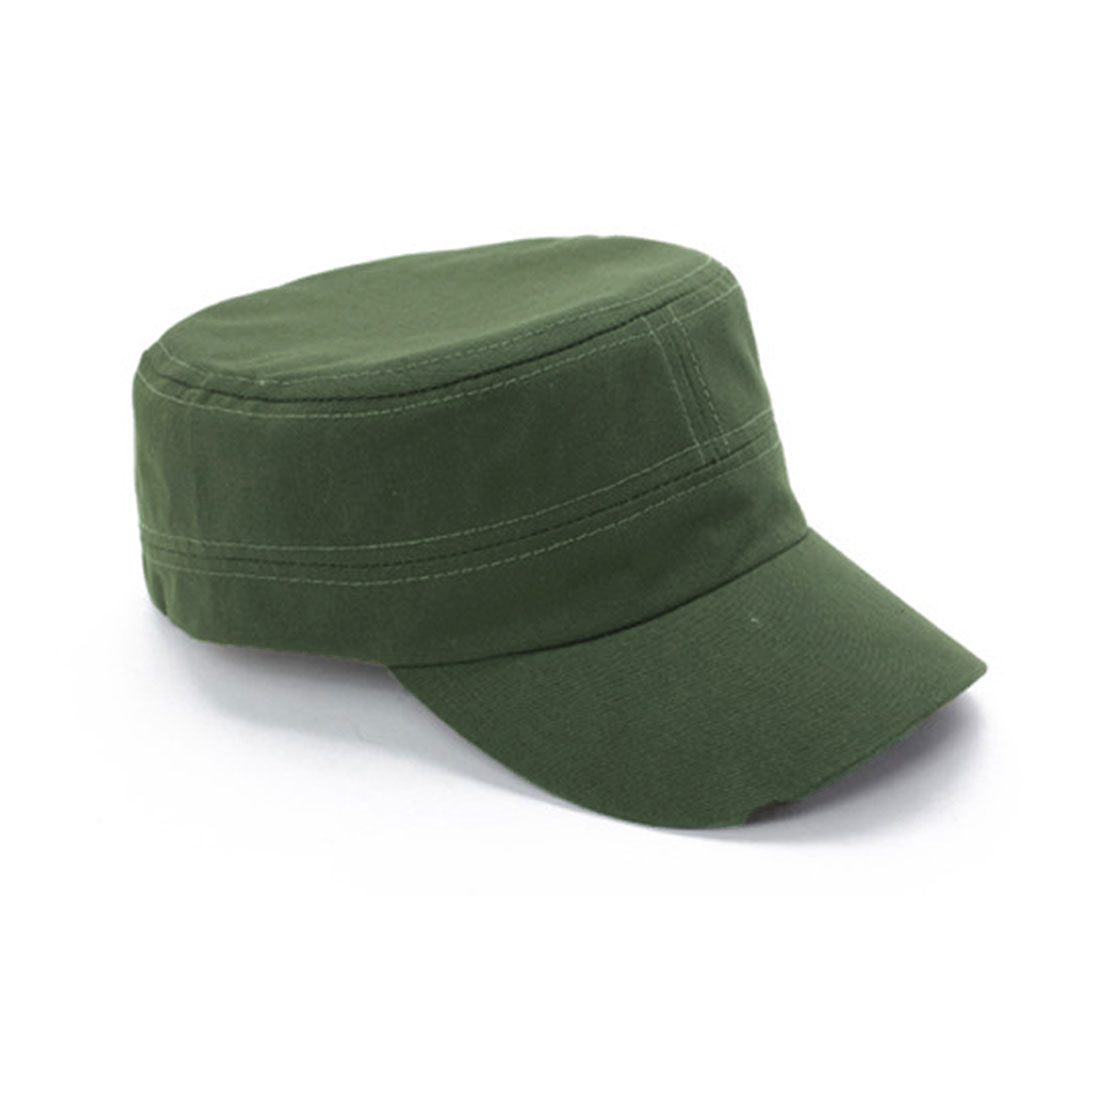 Unisex Solid Visor Leisure Fashional Design Peaked Cap Army Green